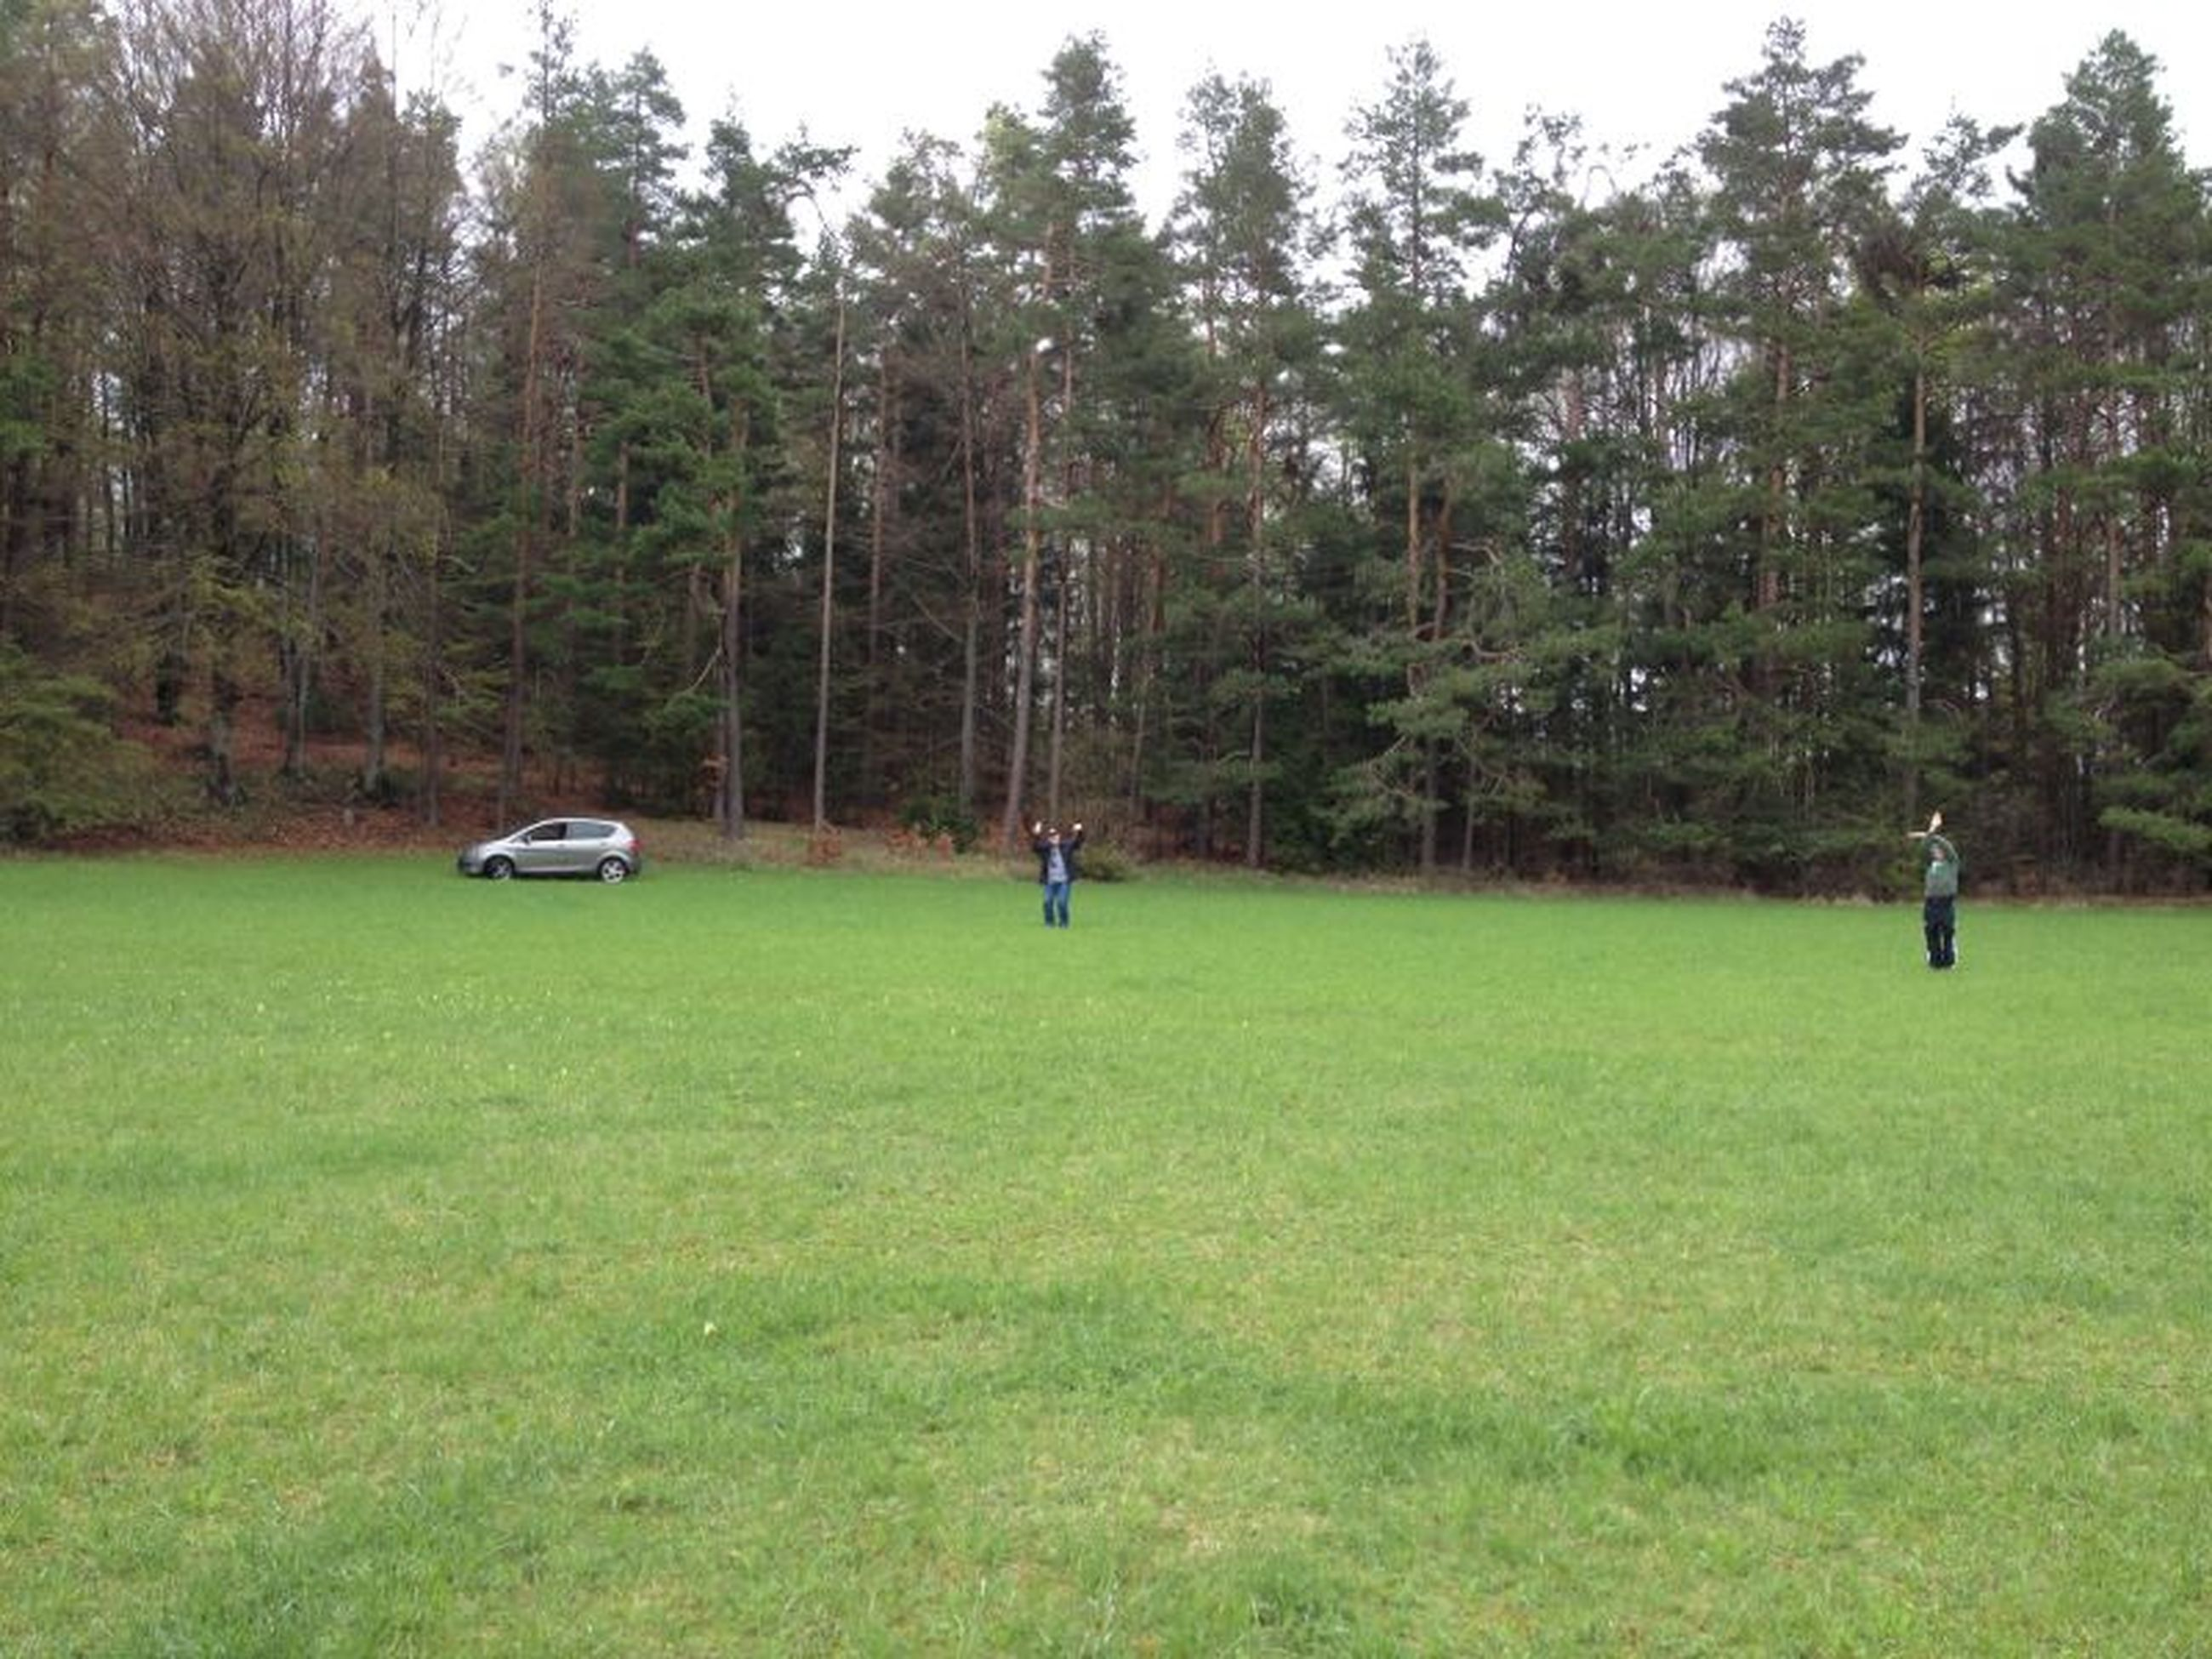 tree, grass, green color, leisure activity, growth, lifestyles, men, nature, tranquility, park - man made space, grassy, field, tranquil scene, transportation, beauty in nature, day, landscape, person